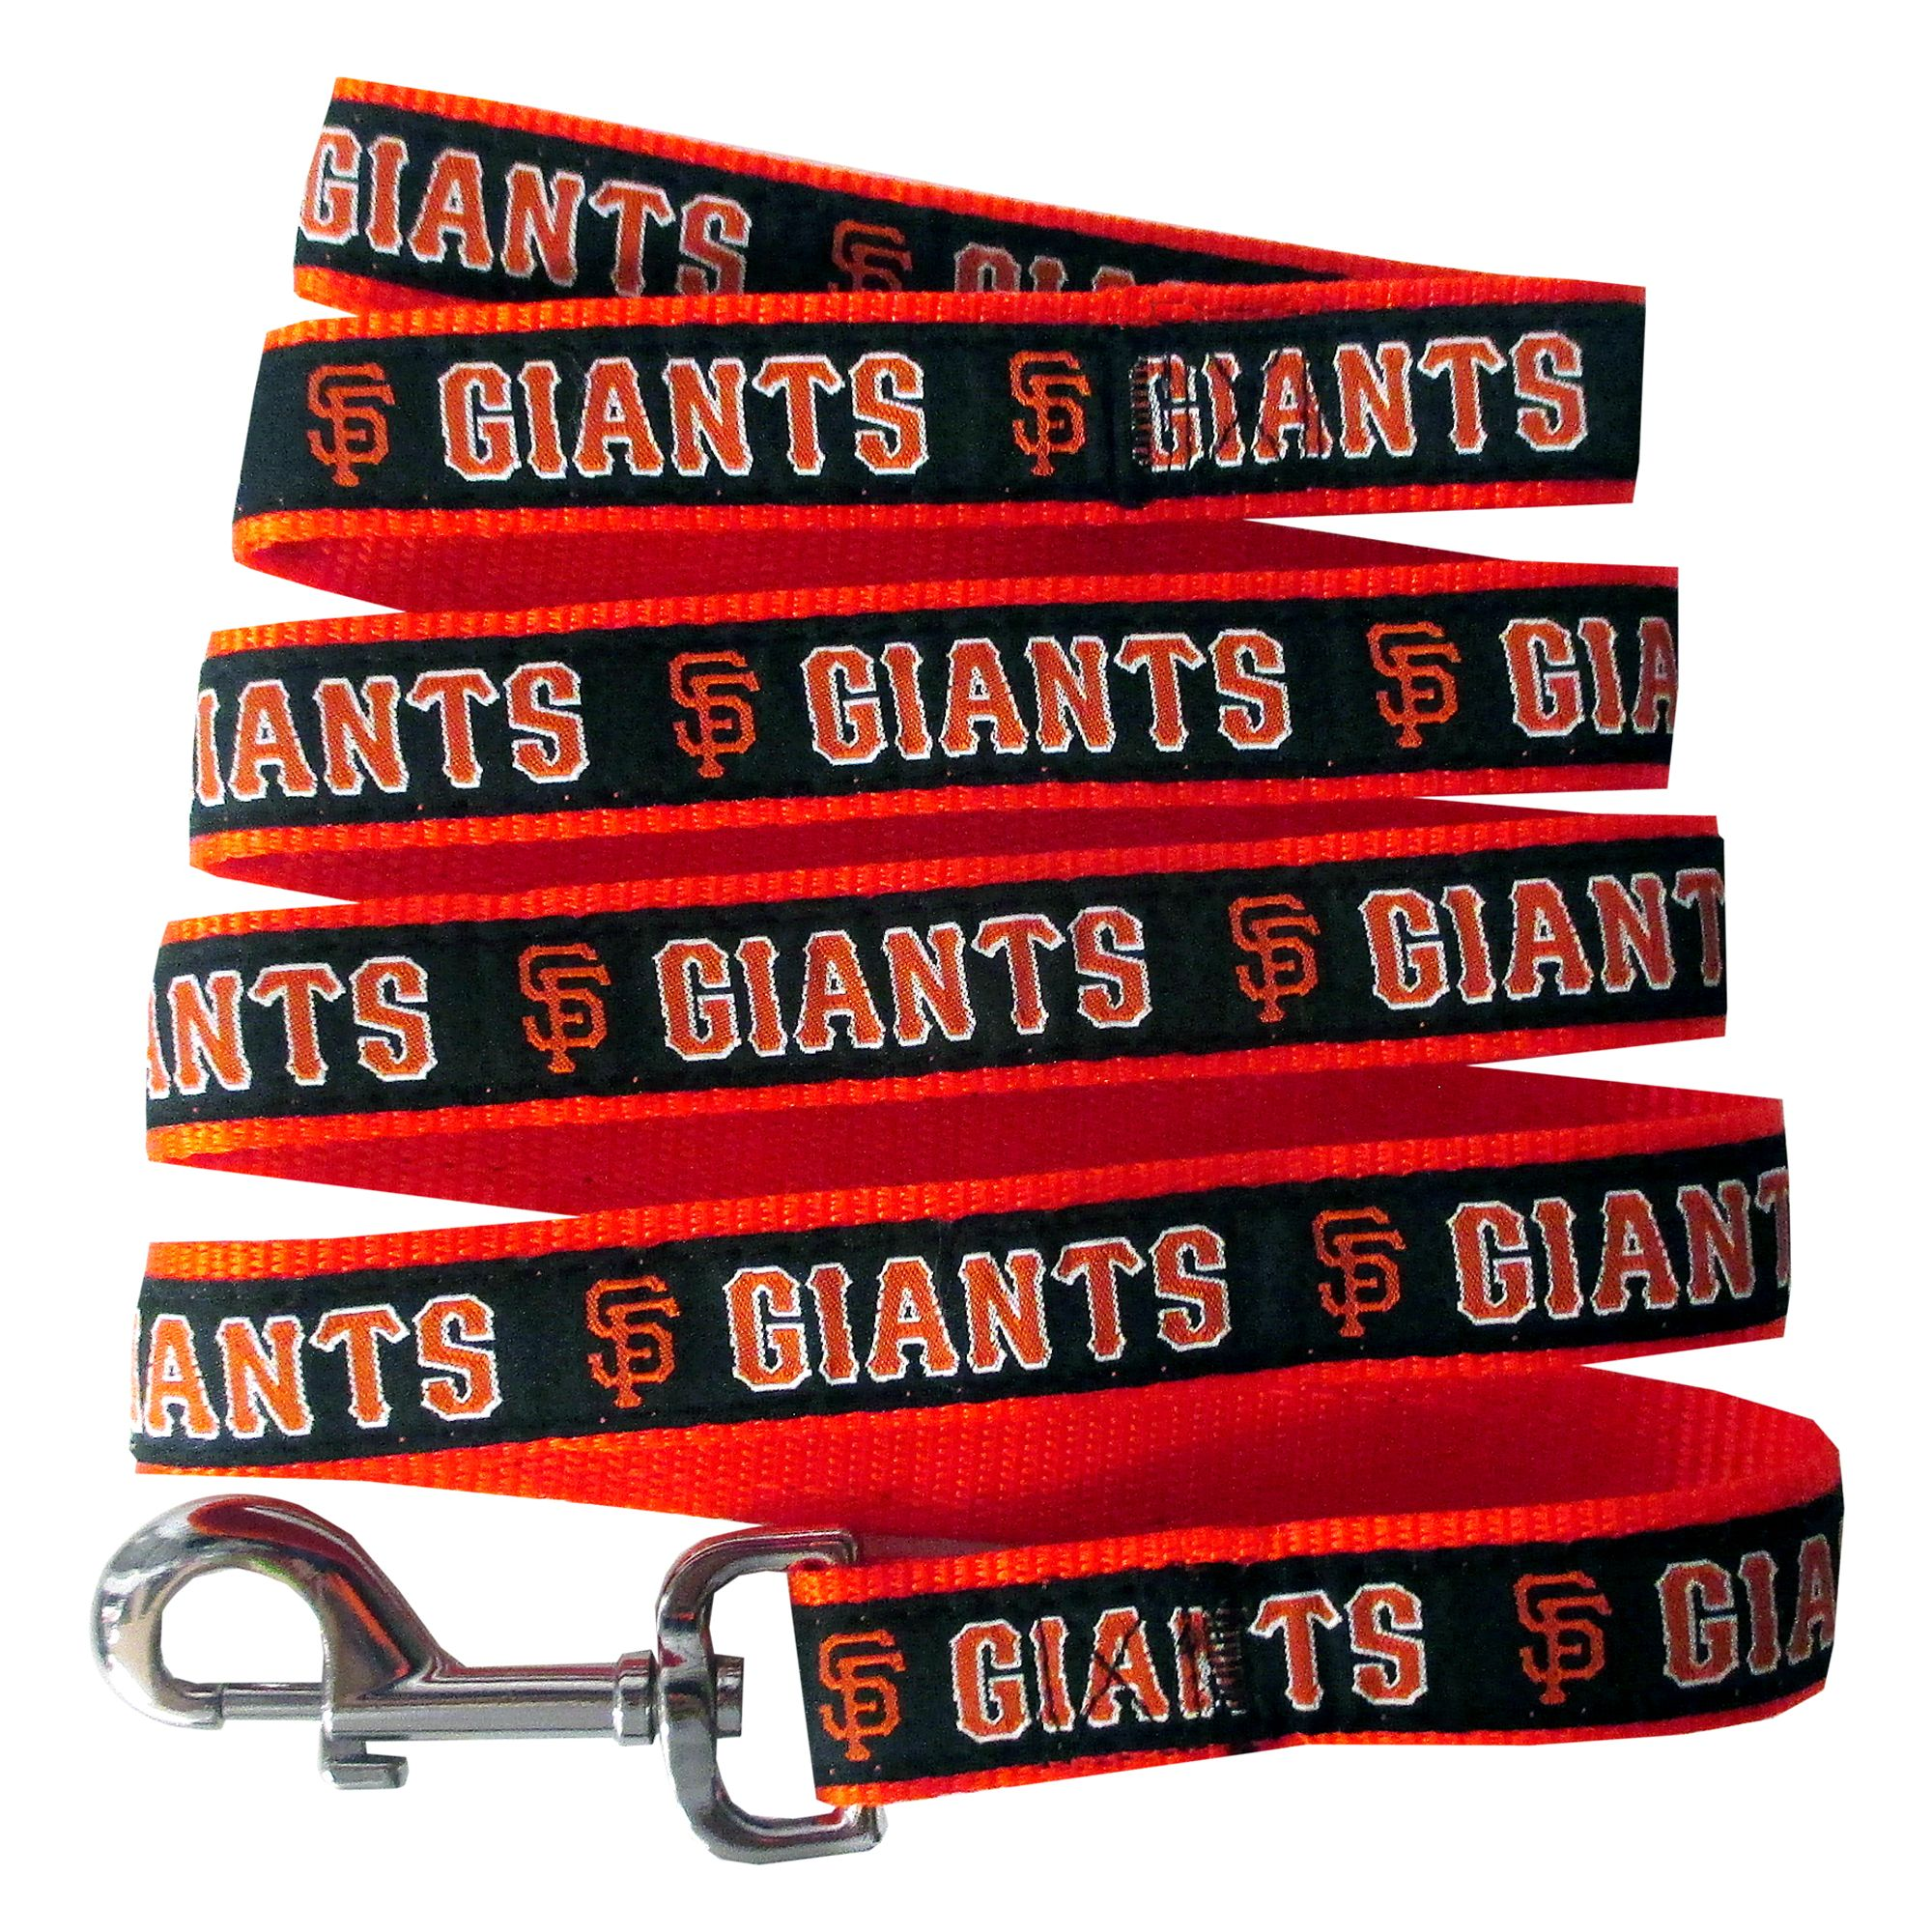 San Francisco Giants MLB Dog Leash size: Large 5252386